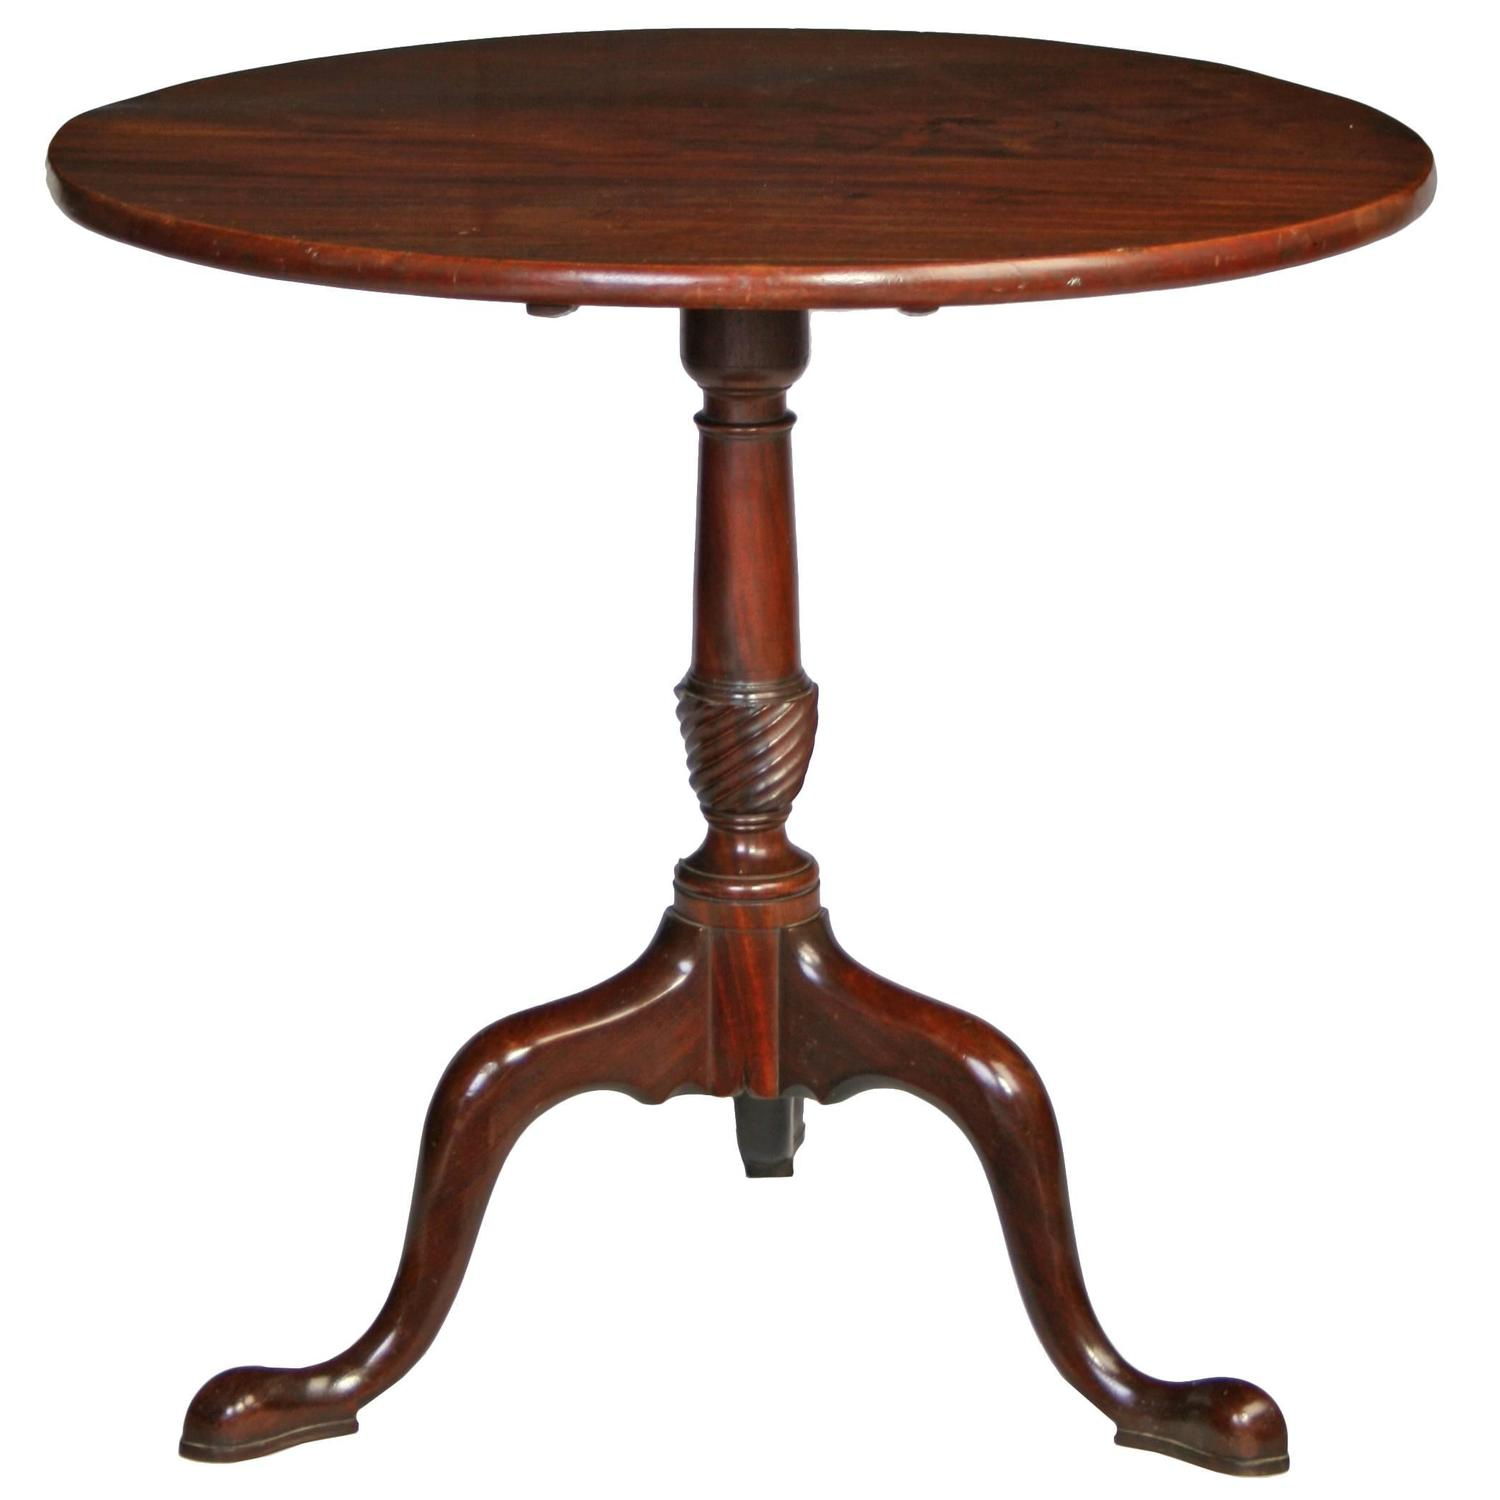 george iii mahogany tripod table at 1stdibs. Black Bedroom Furniture Sets. Home Design Ideas